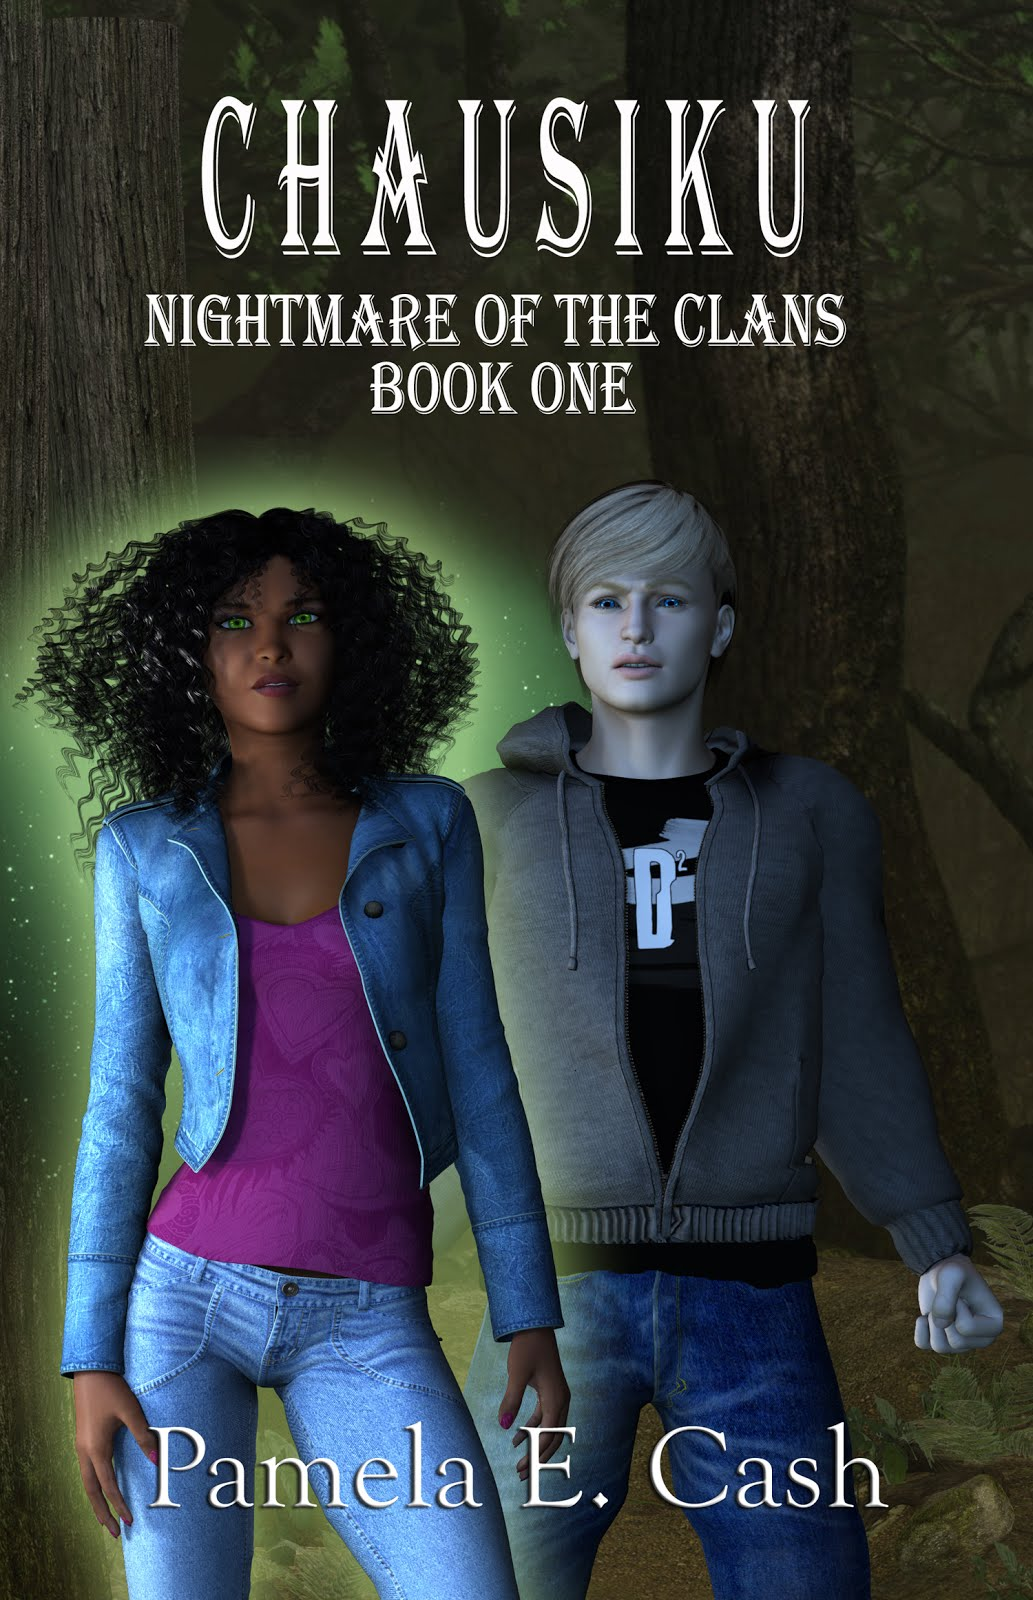 Chausiku: Nightmare of the Clans Book One